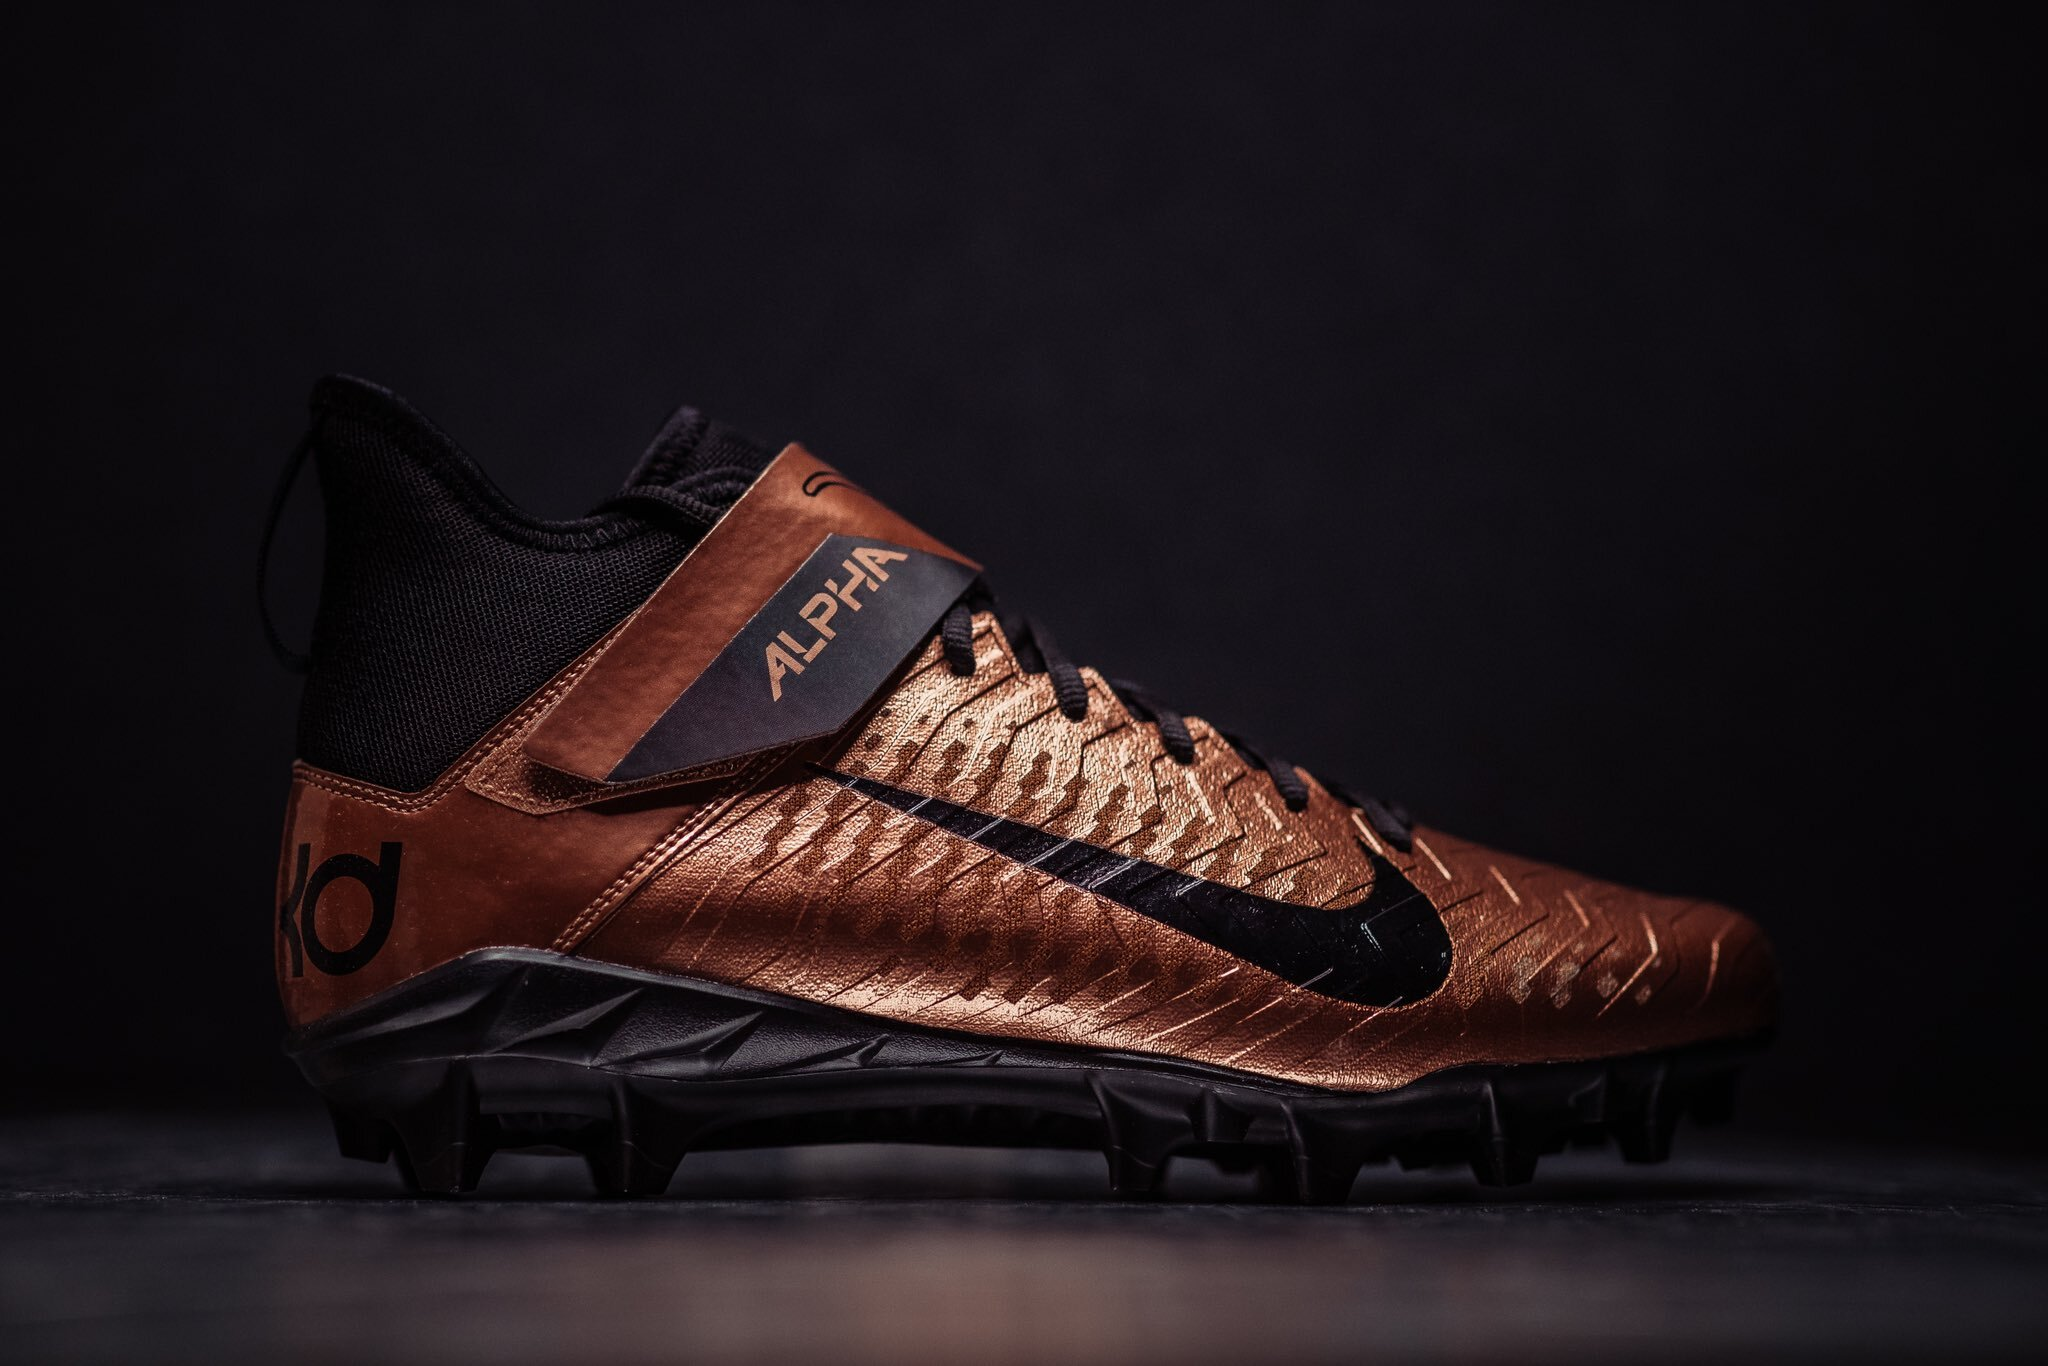 Texas Football Kevin Durant Cleats